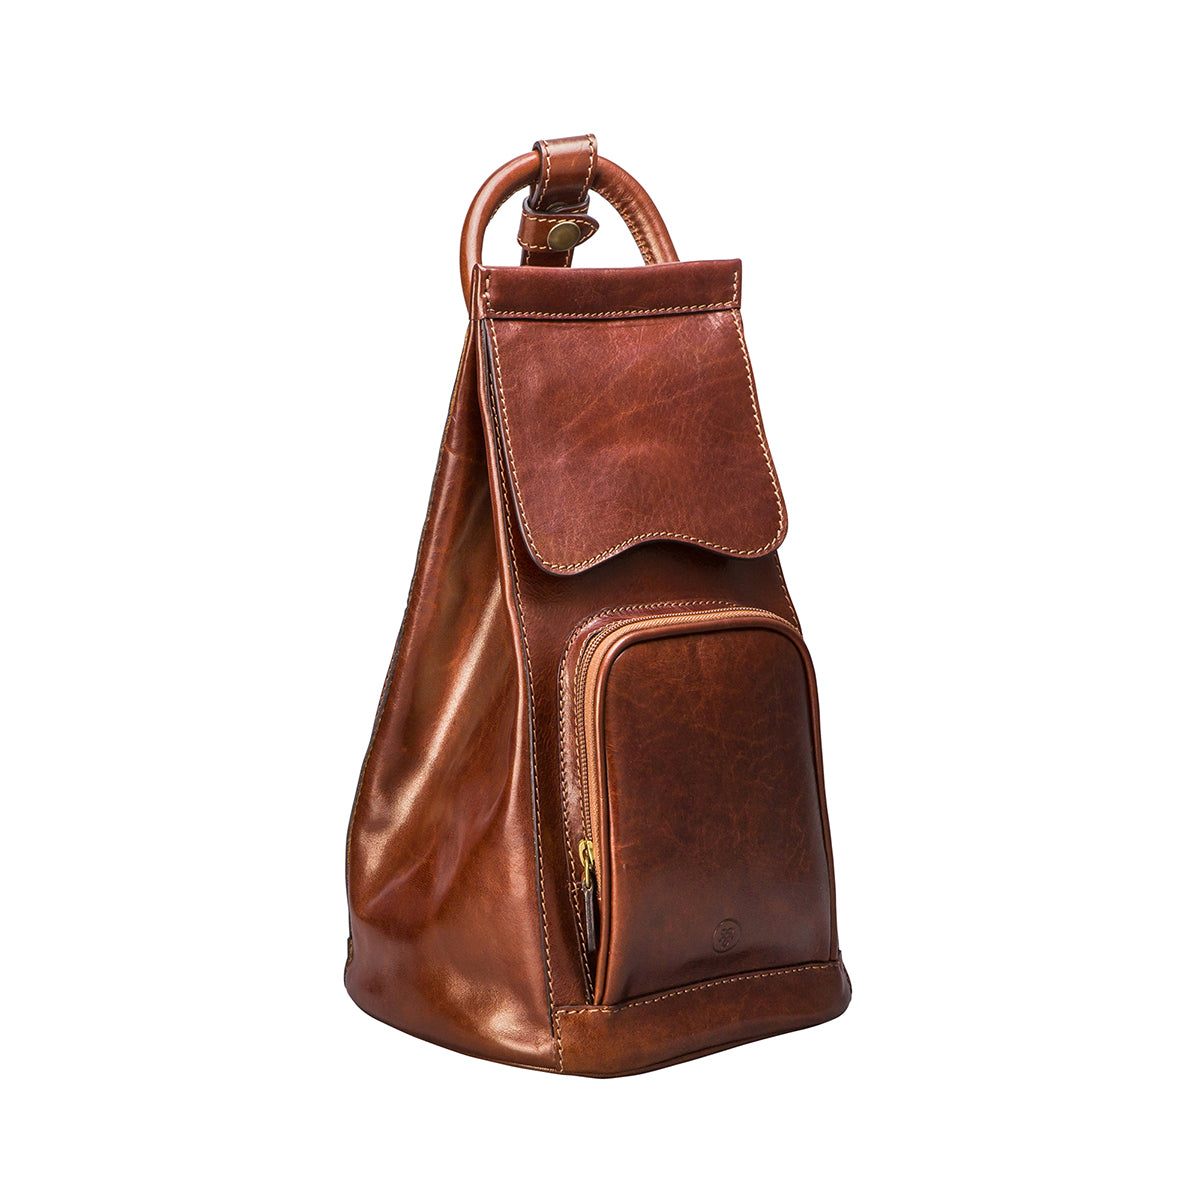 Image 2 of the 'Carli' Chestnut Tan Veg-Tanned Leather Backpack